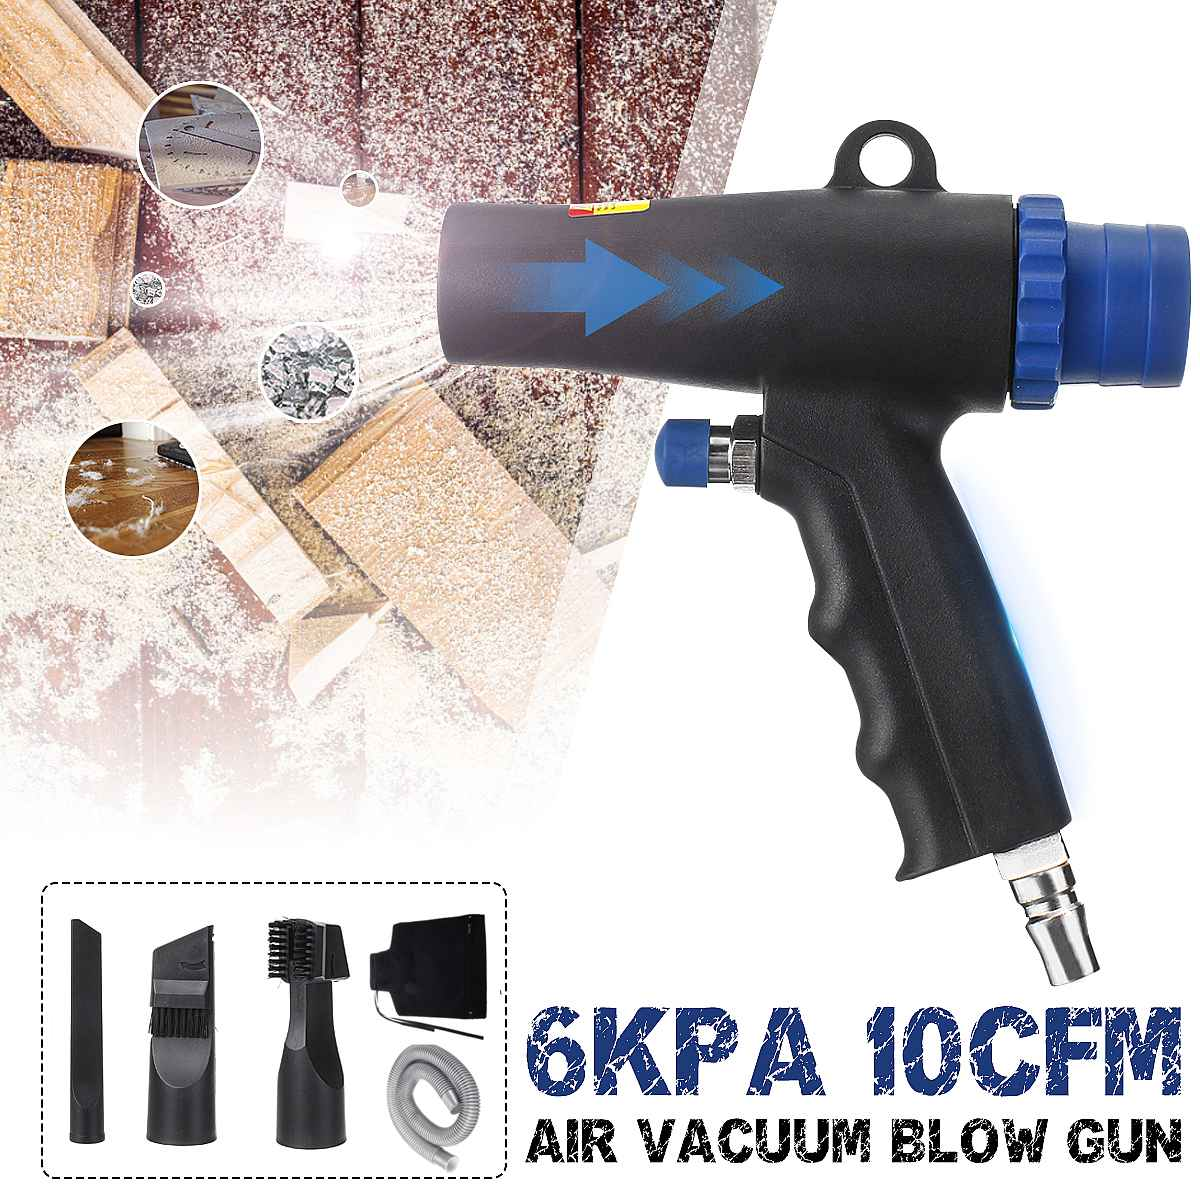 2 In 1 Air Duster Compressor Dual Function Air Vacuum Blow Suction Guns Air Wonder Guns Kit Pneumatic Vacuum Cleaner Tool